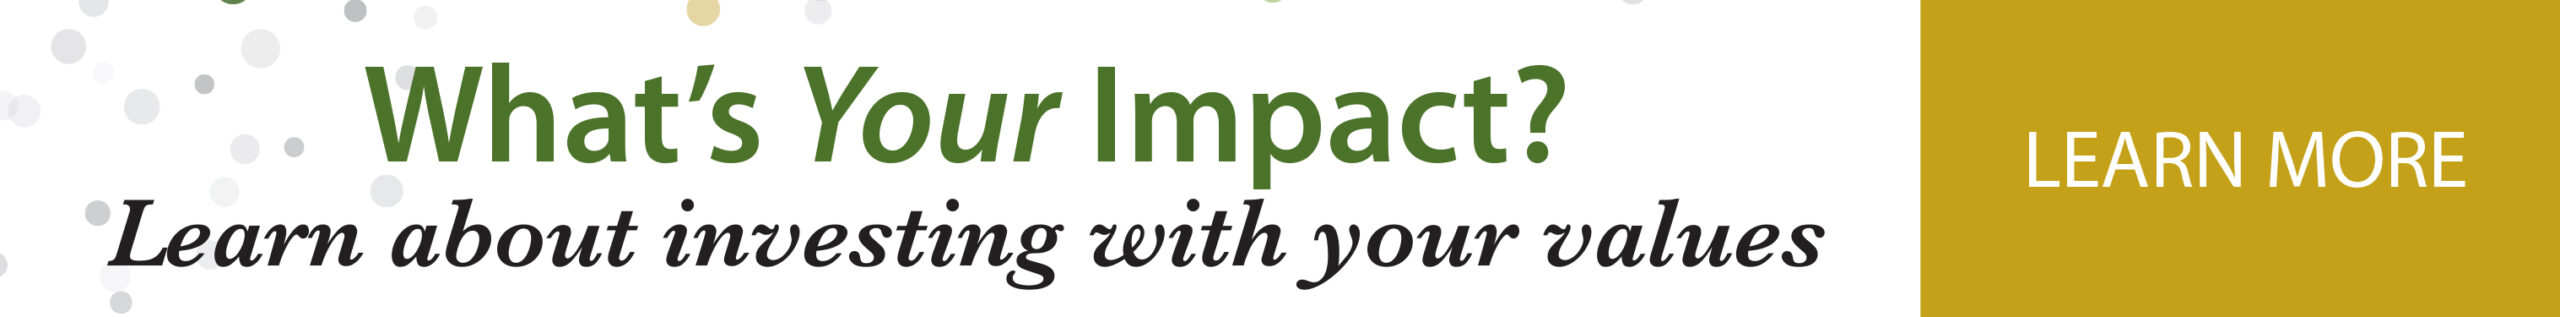 What's Your Impact? Learn about investing with your values